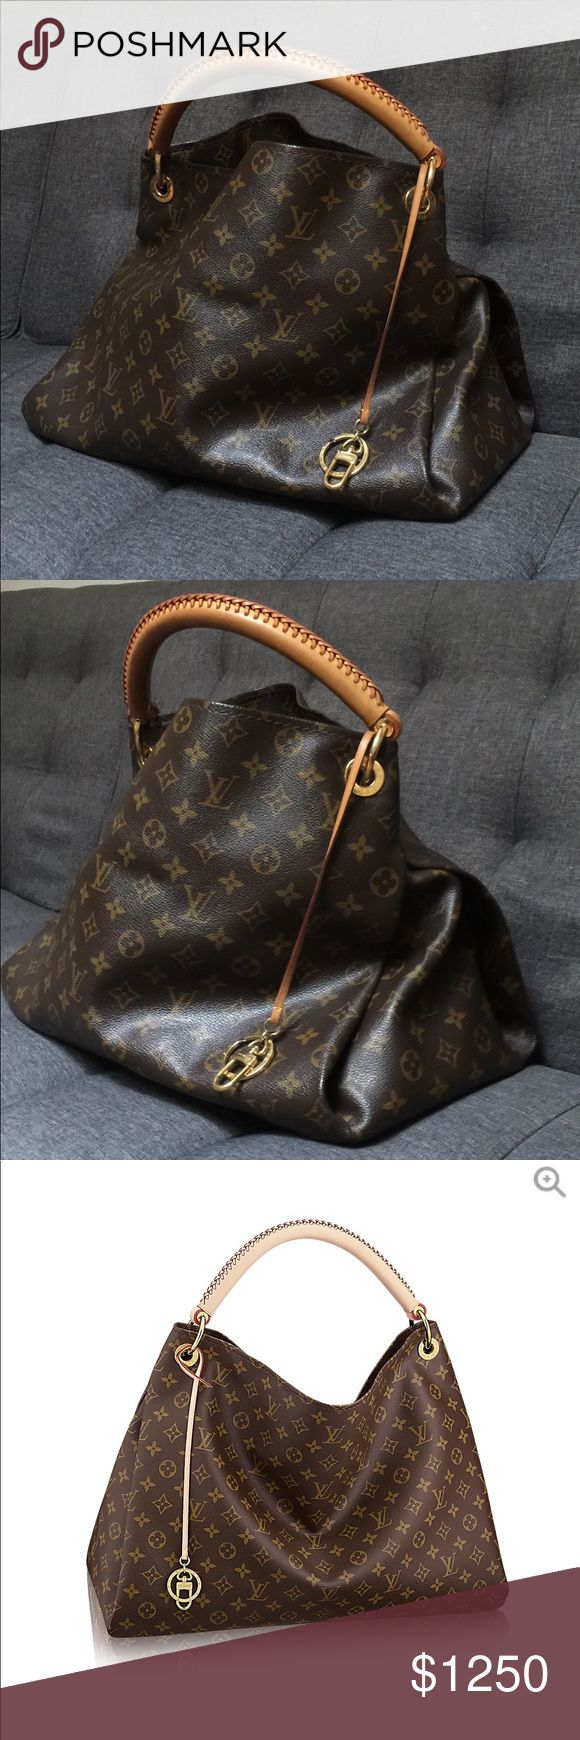 c1a3ee549f3 What Year Did The Louis Vuitton Artsy Come Out